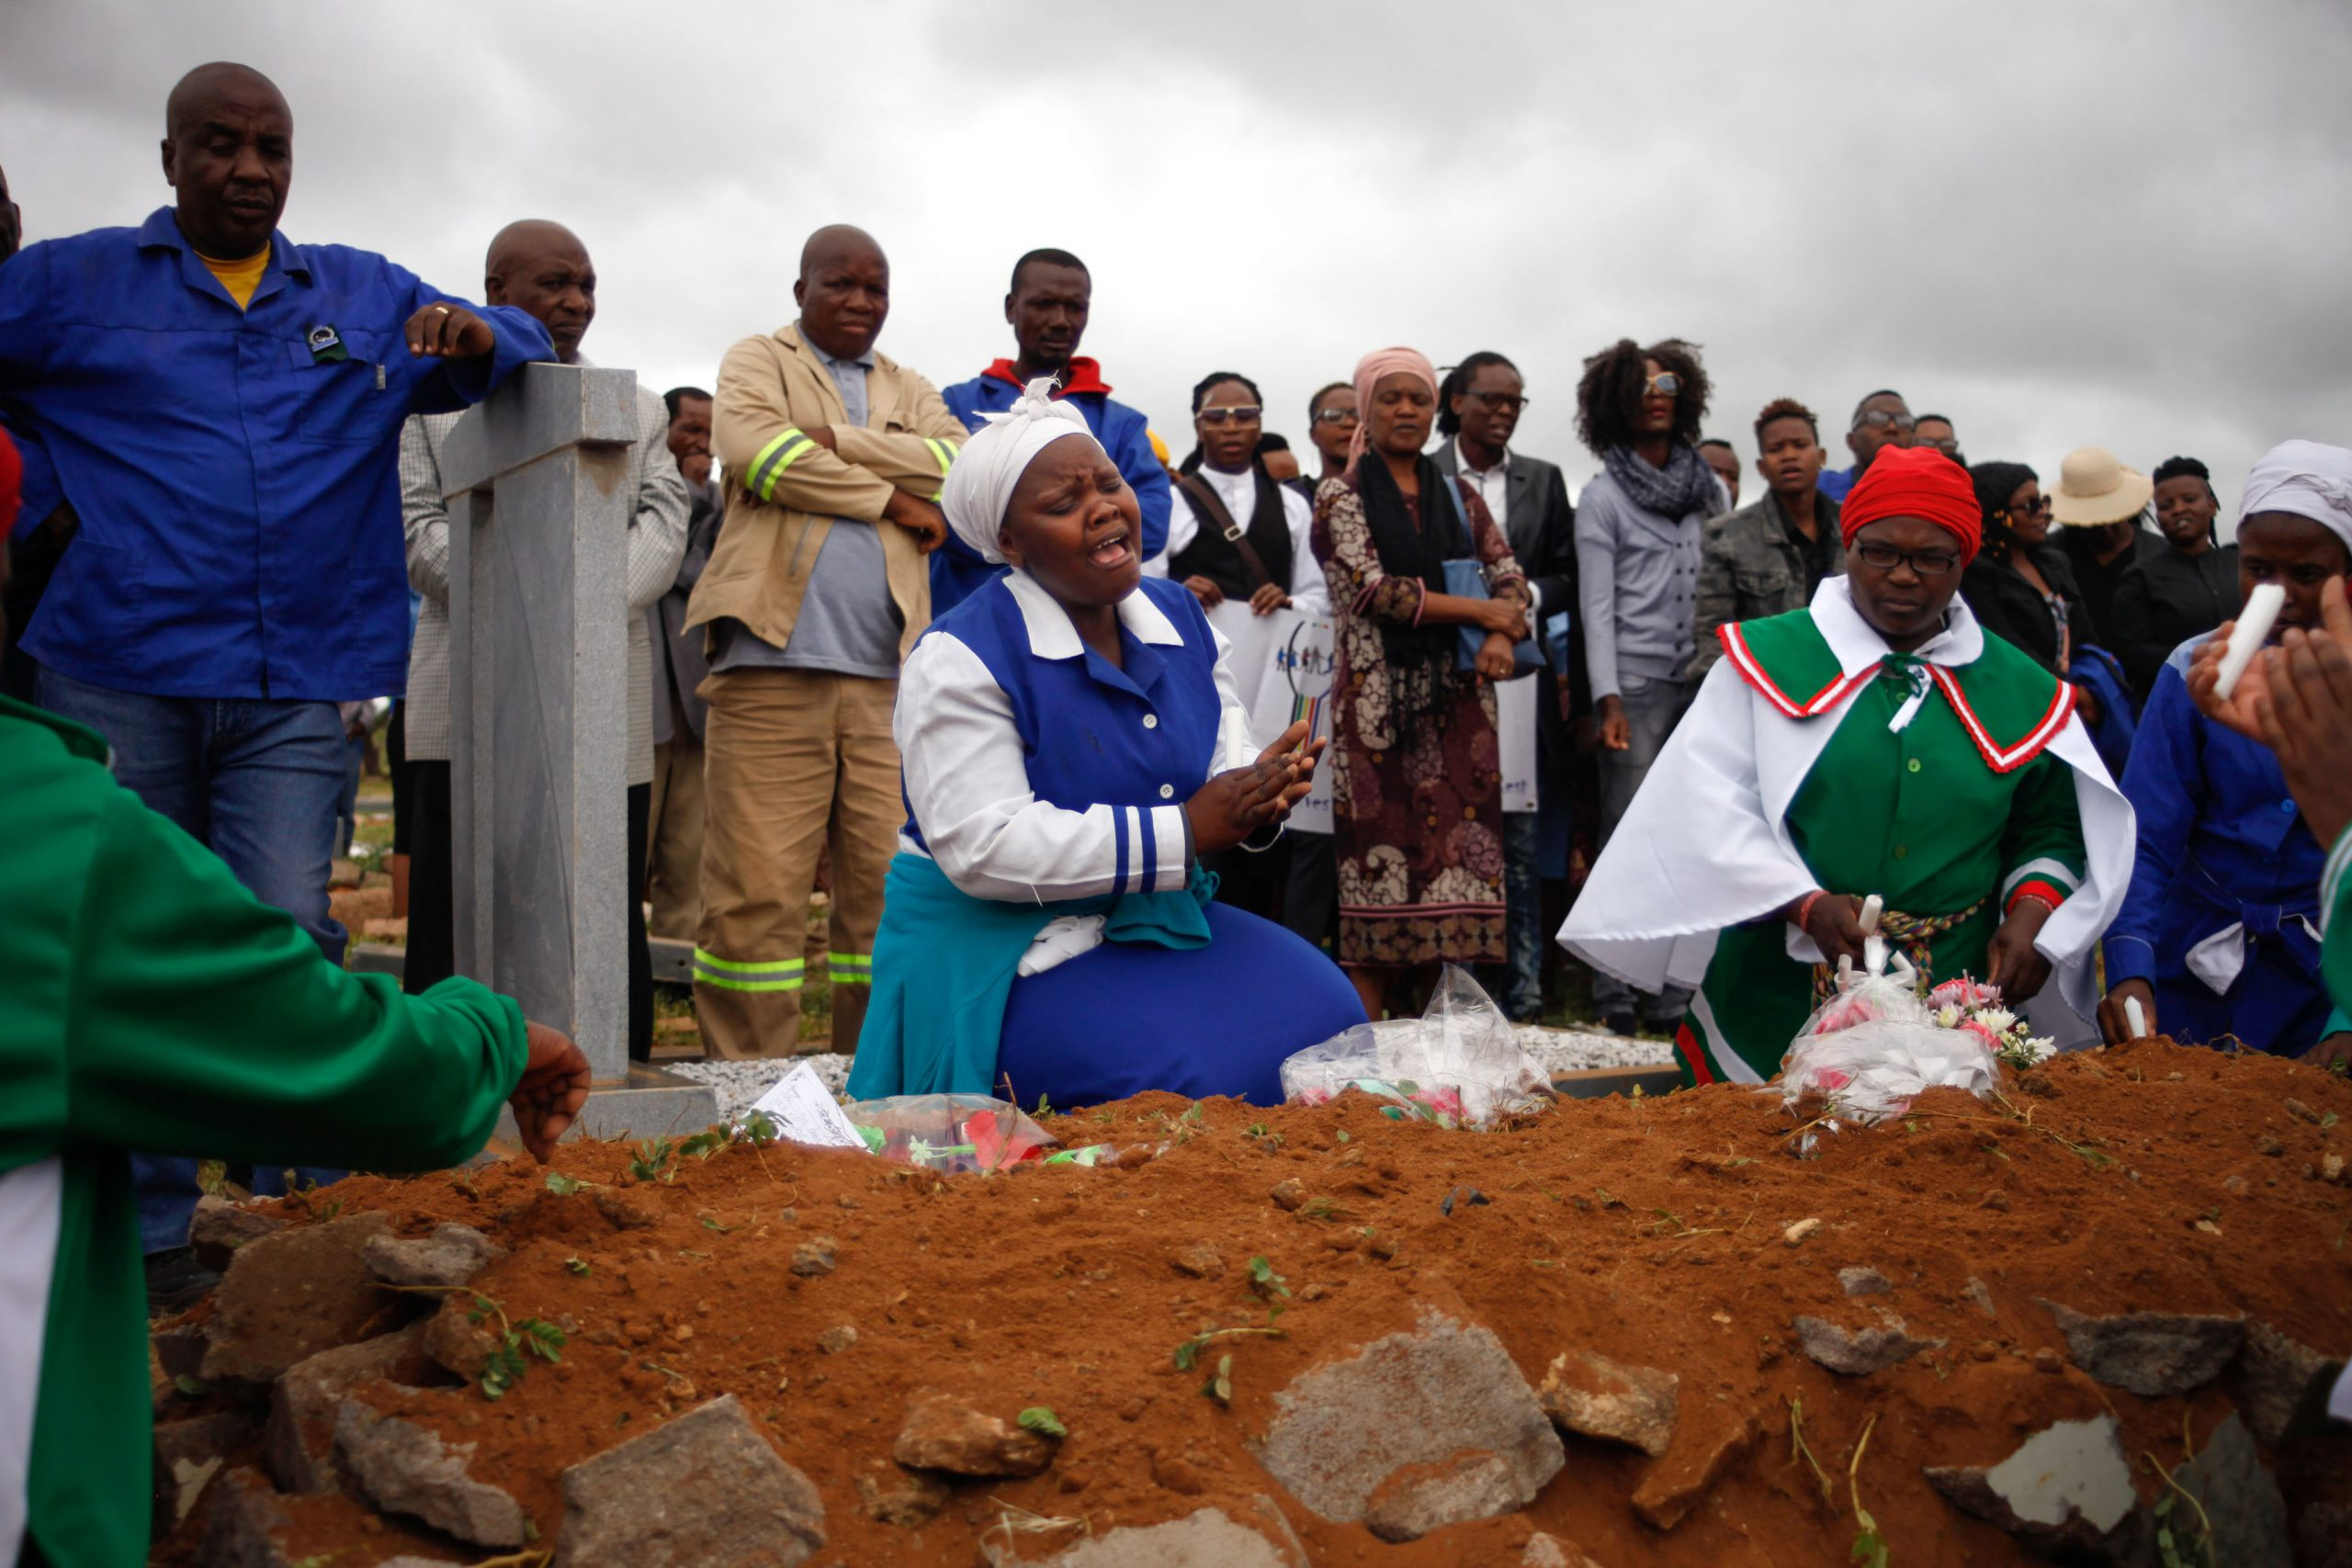 11 January 2020: Community members mourn Nare Mphela's violent death.